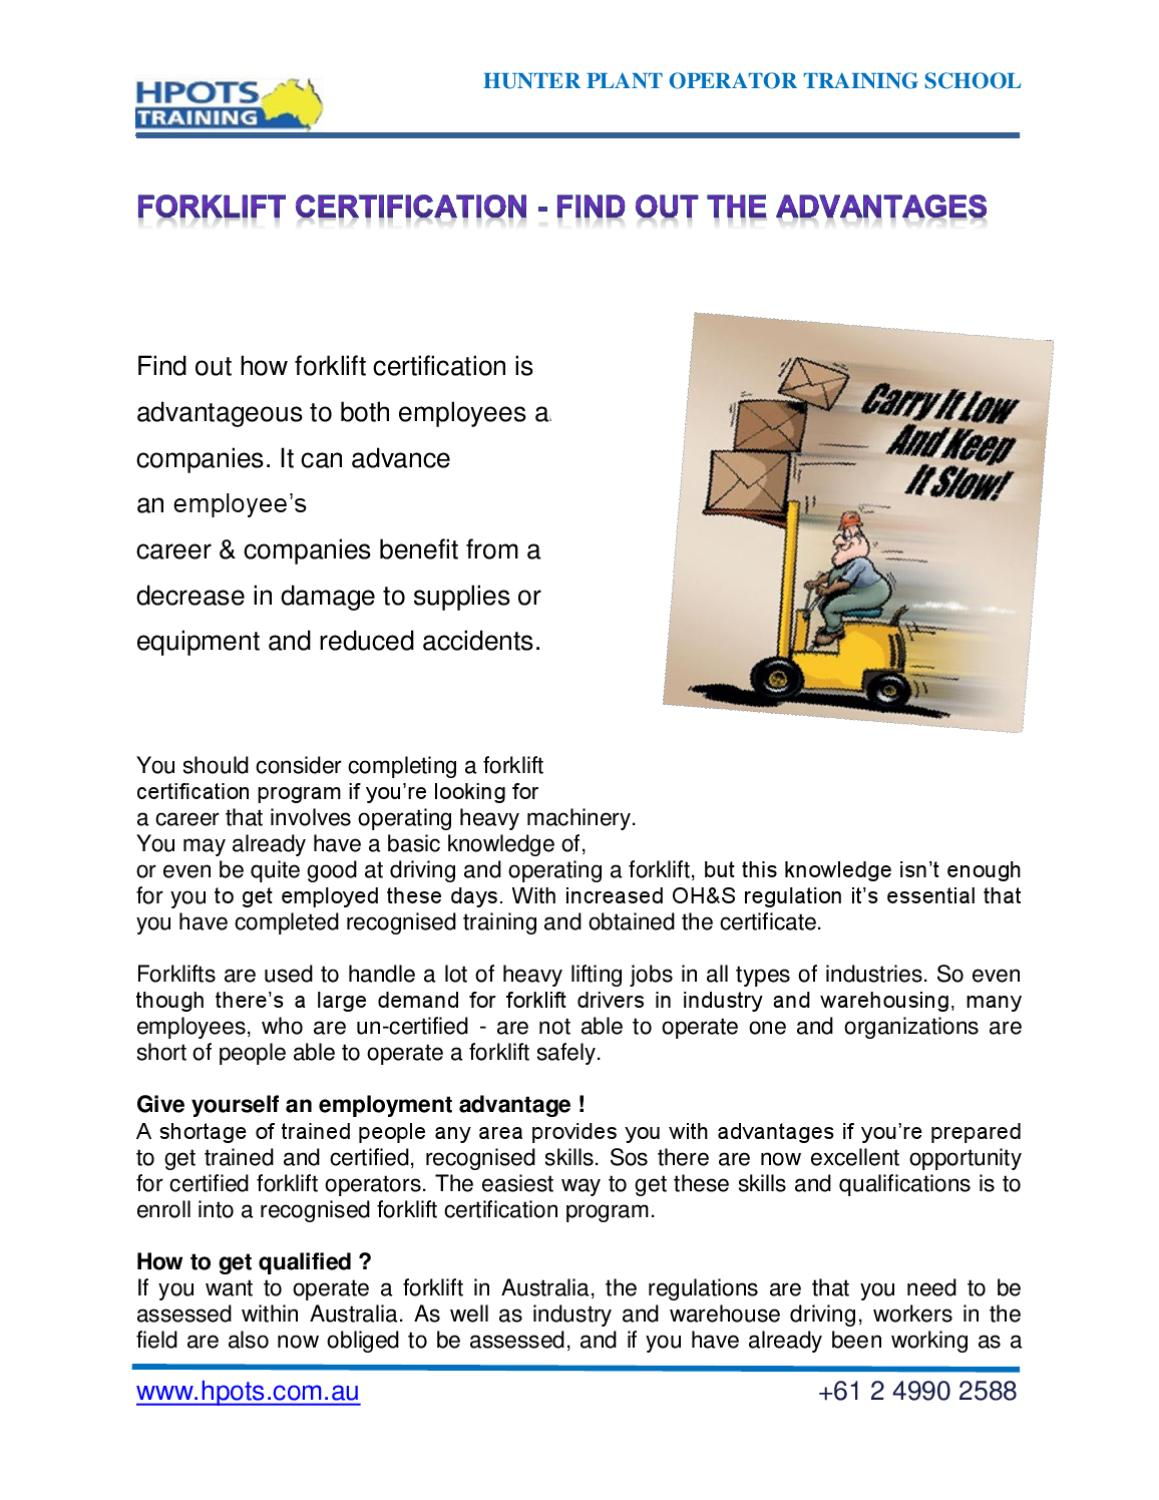 Forklift Certification Find Out The Advantages By Daniel Frater